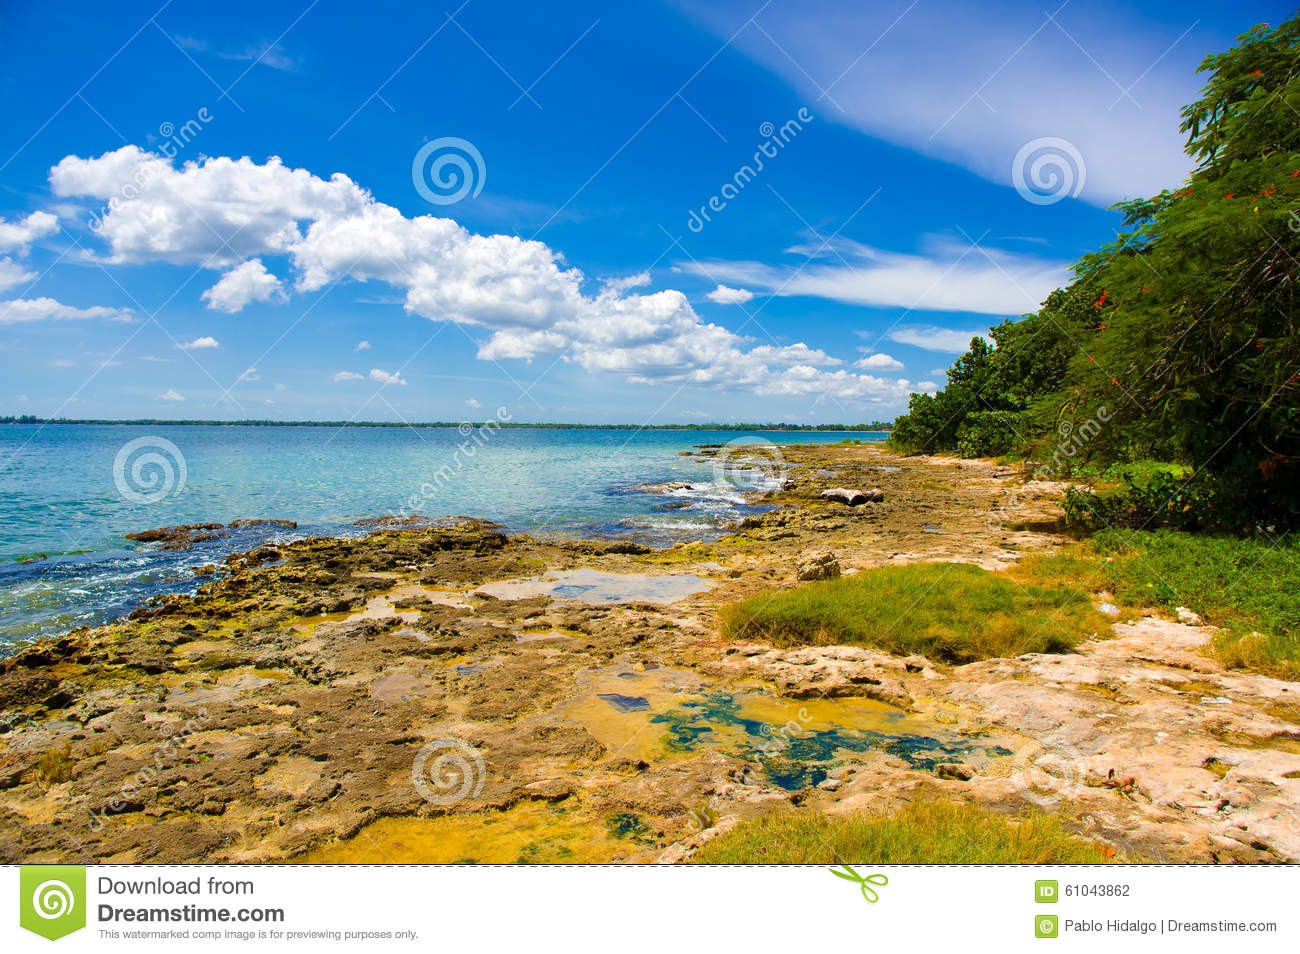 Download The Bay Of Pigs, Playa Giron, Cuba Stock Photo - Image of scenery, green: 61043862